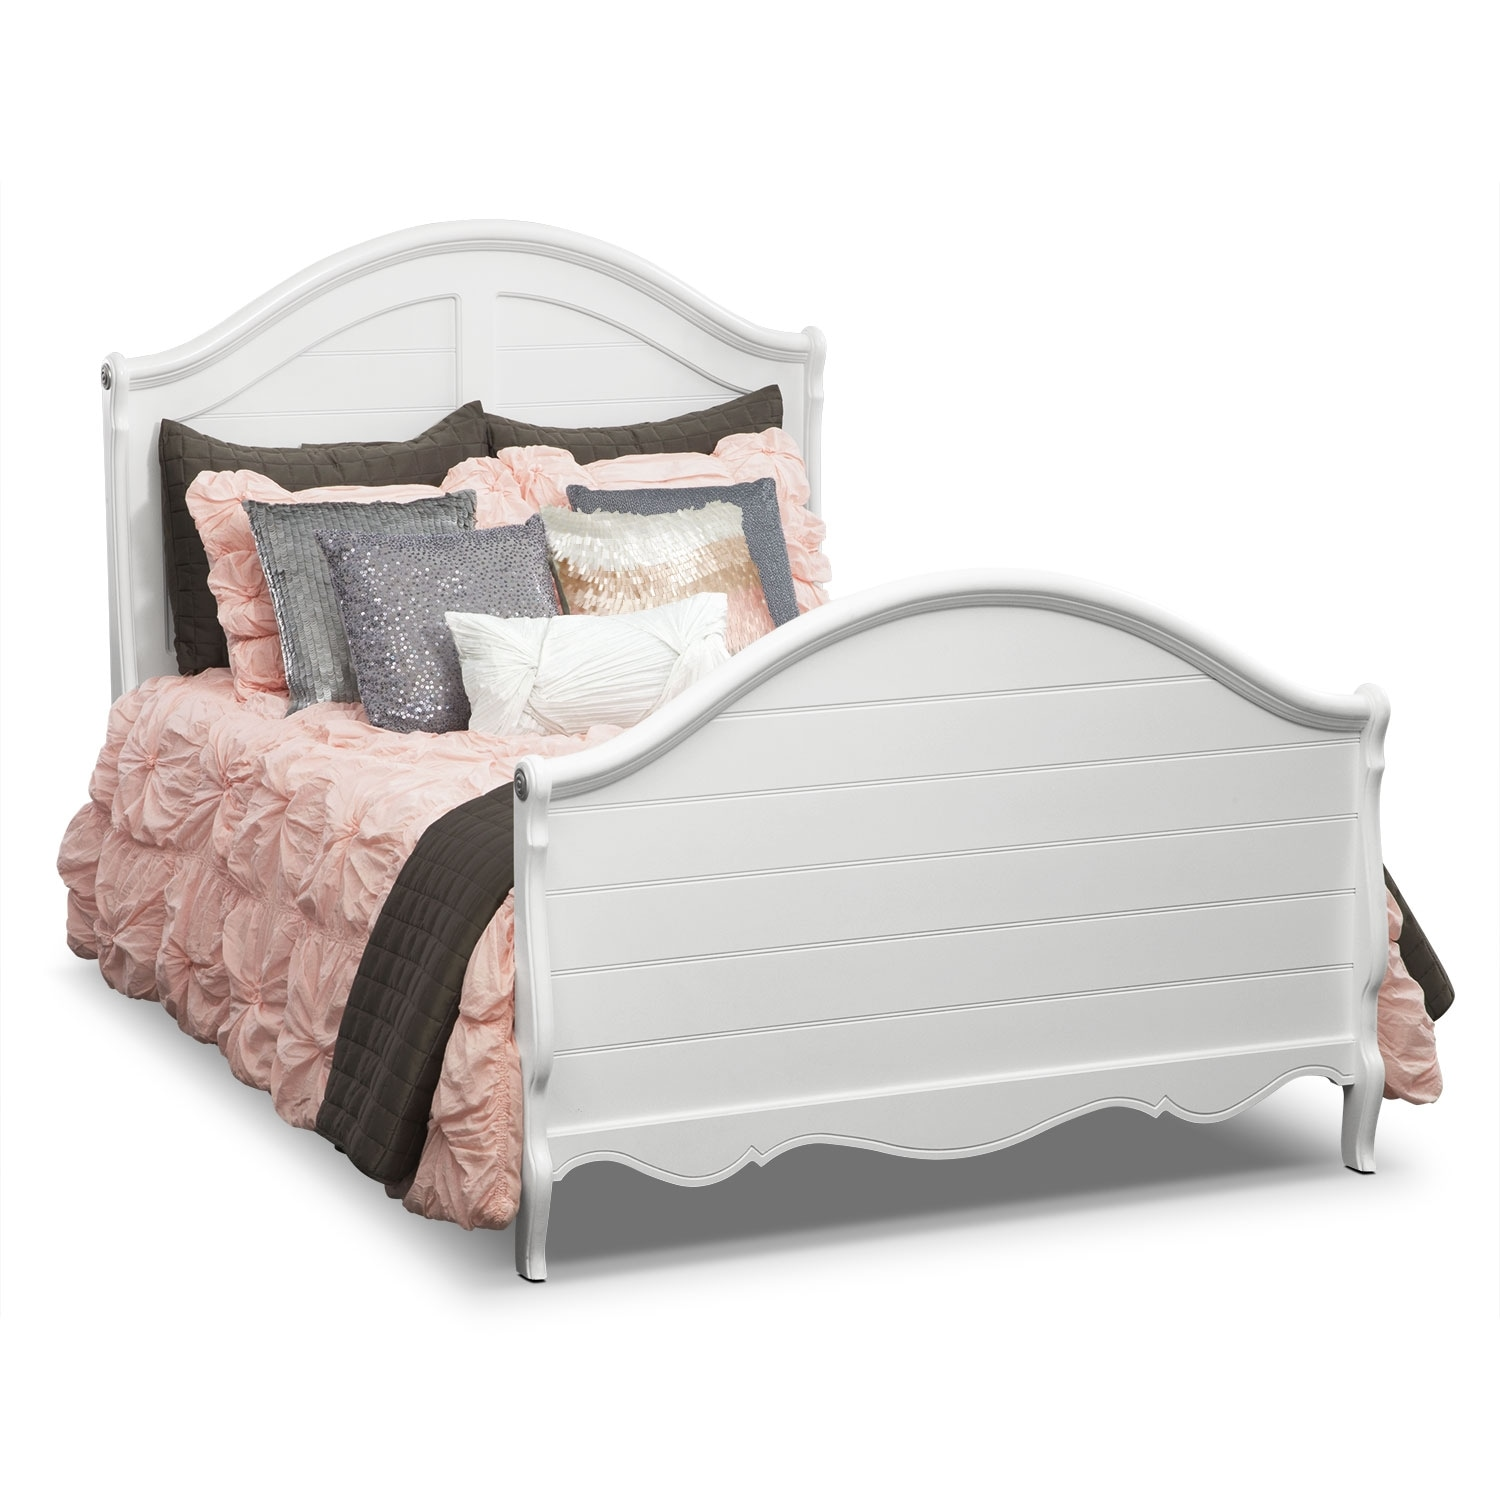 Good Dream Twin Bedding Set